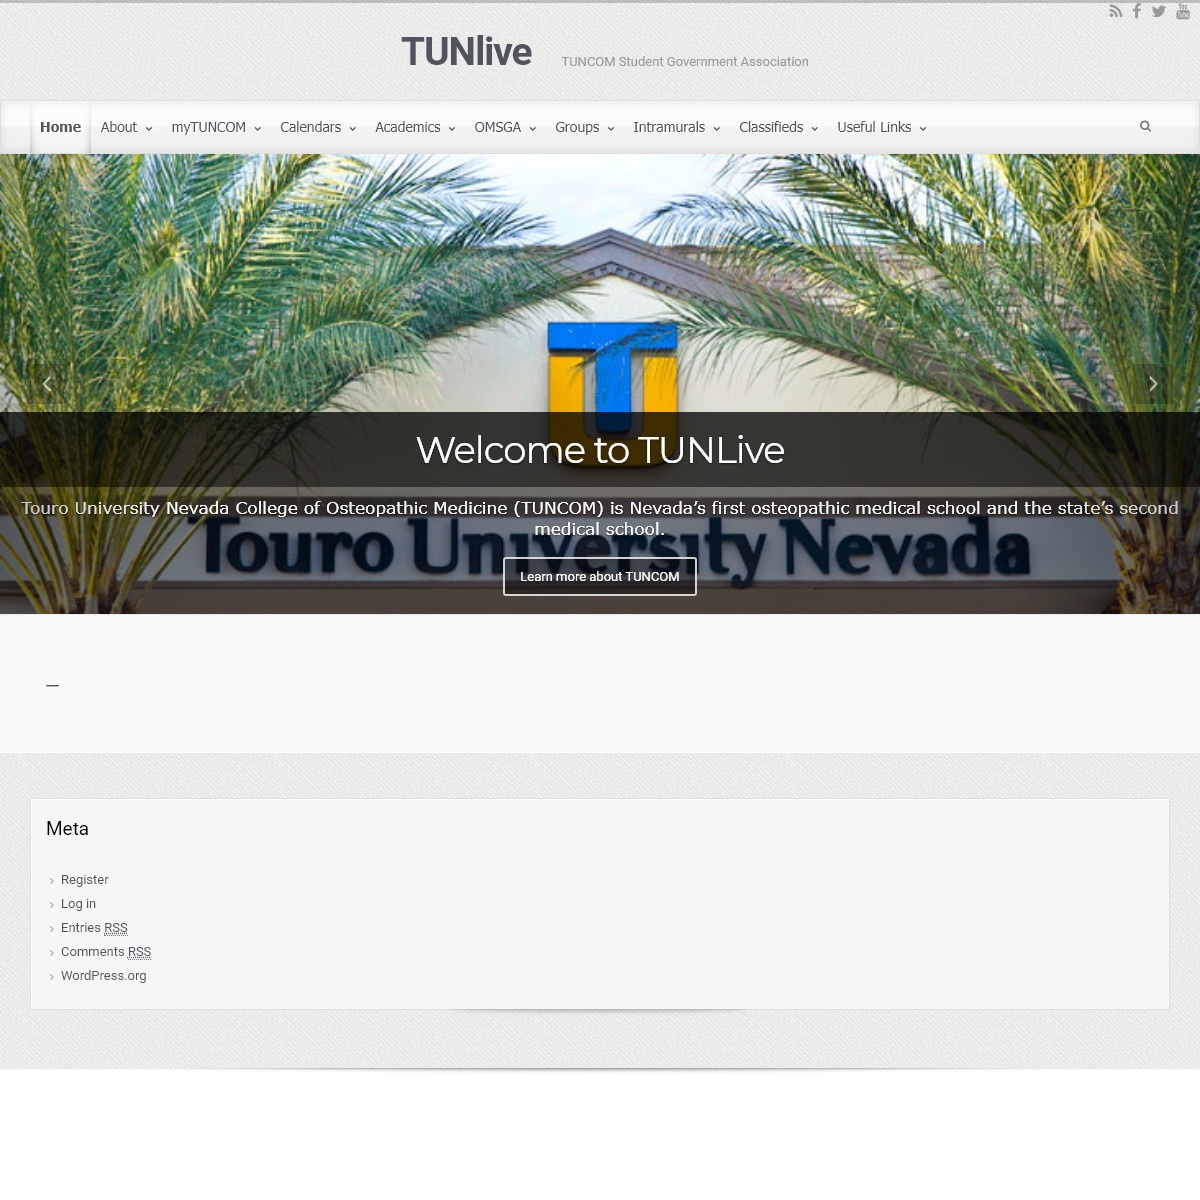 TUNlive – TUNCOM Student Government Association